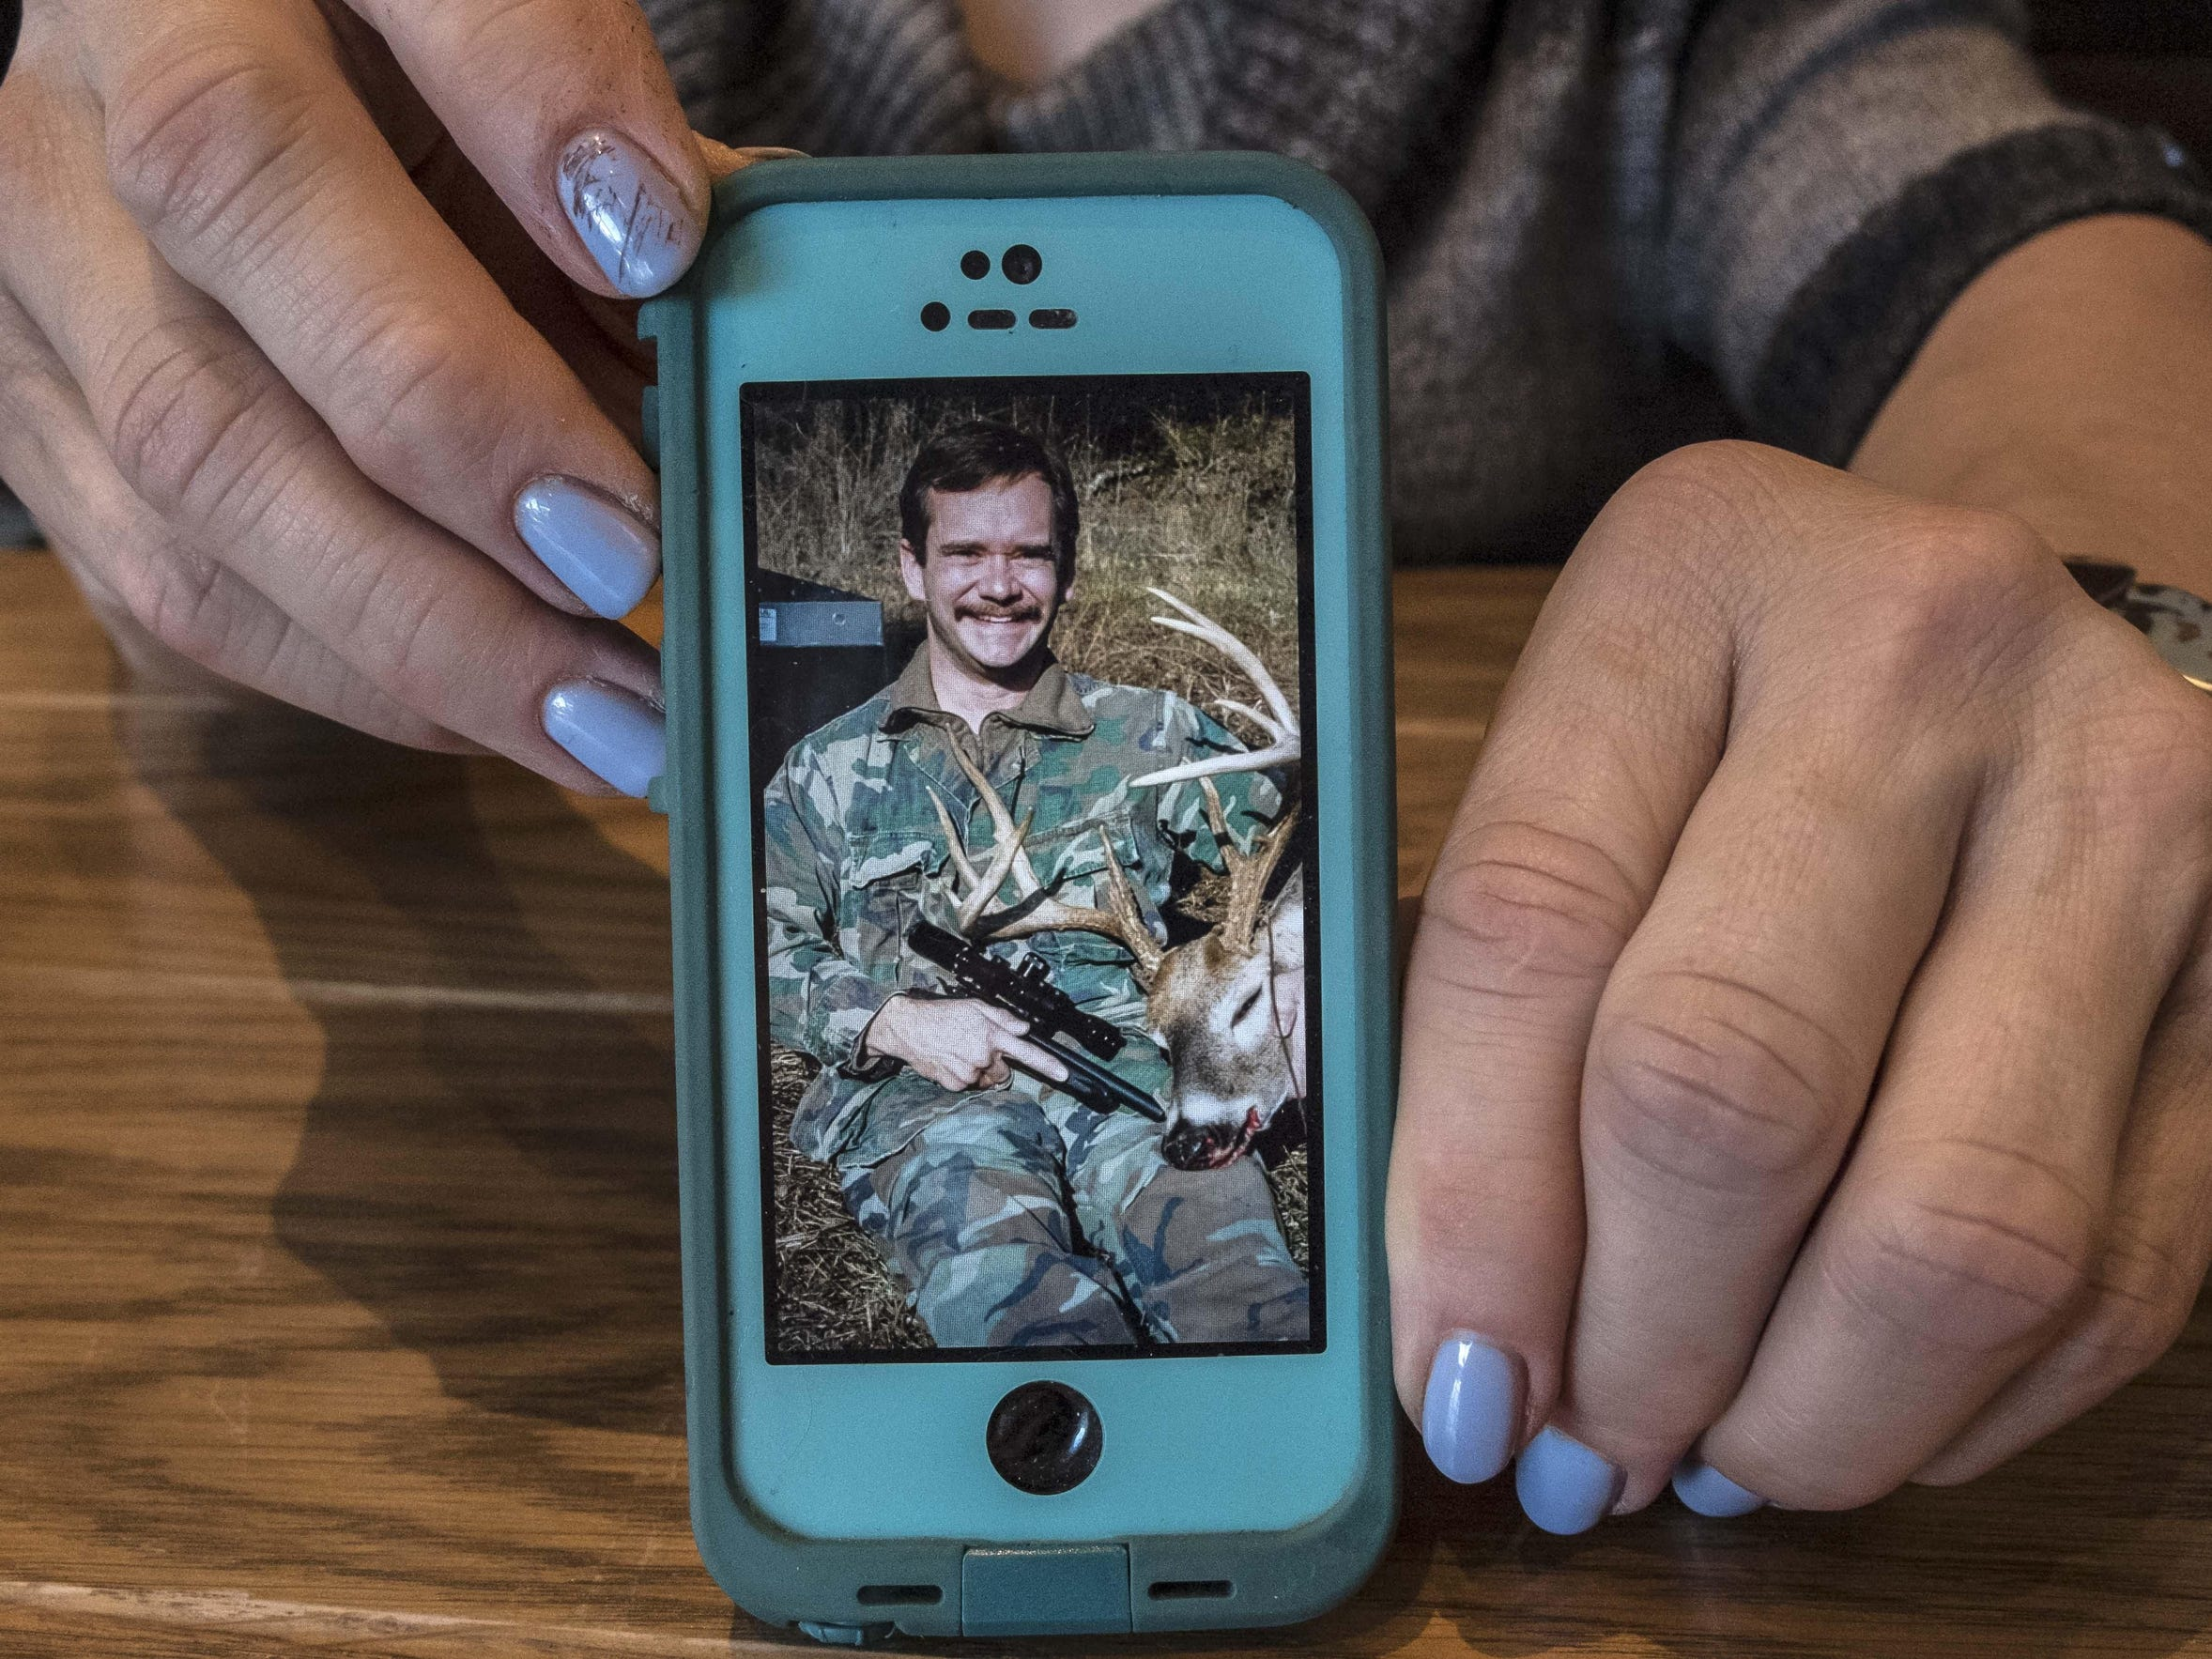 Robin Patty, a former Green Beret, shows a picture